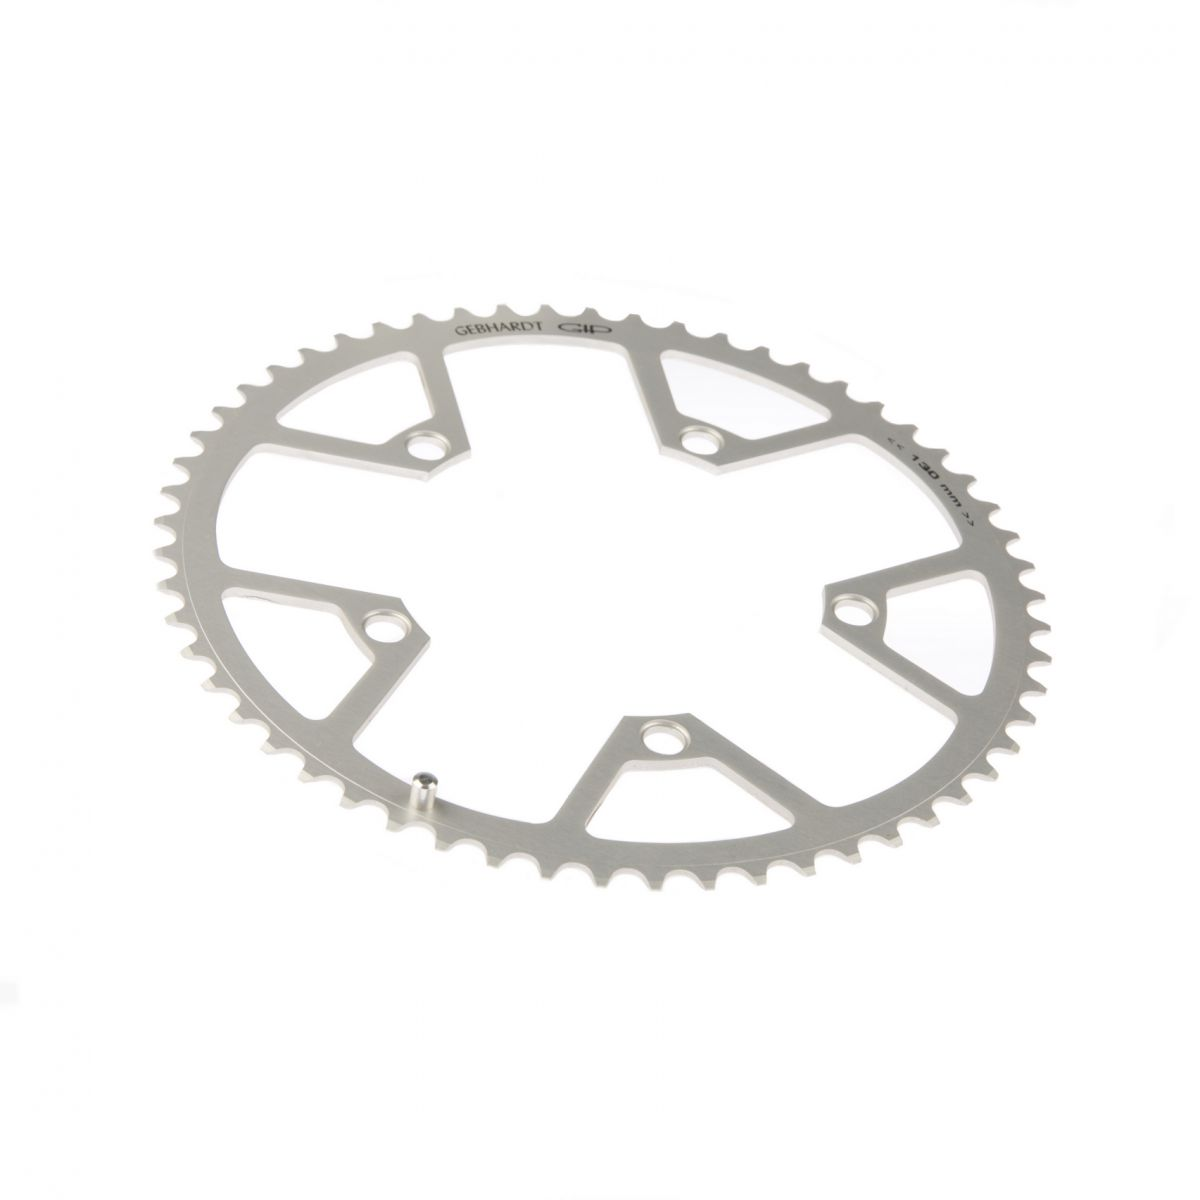 gebhardt chainring classic bcd 130 mm 5hole 48t silver